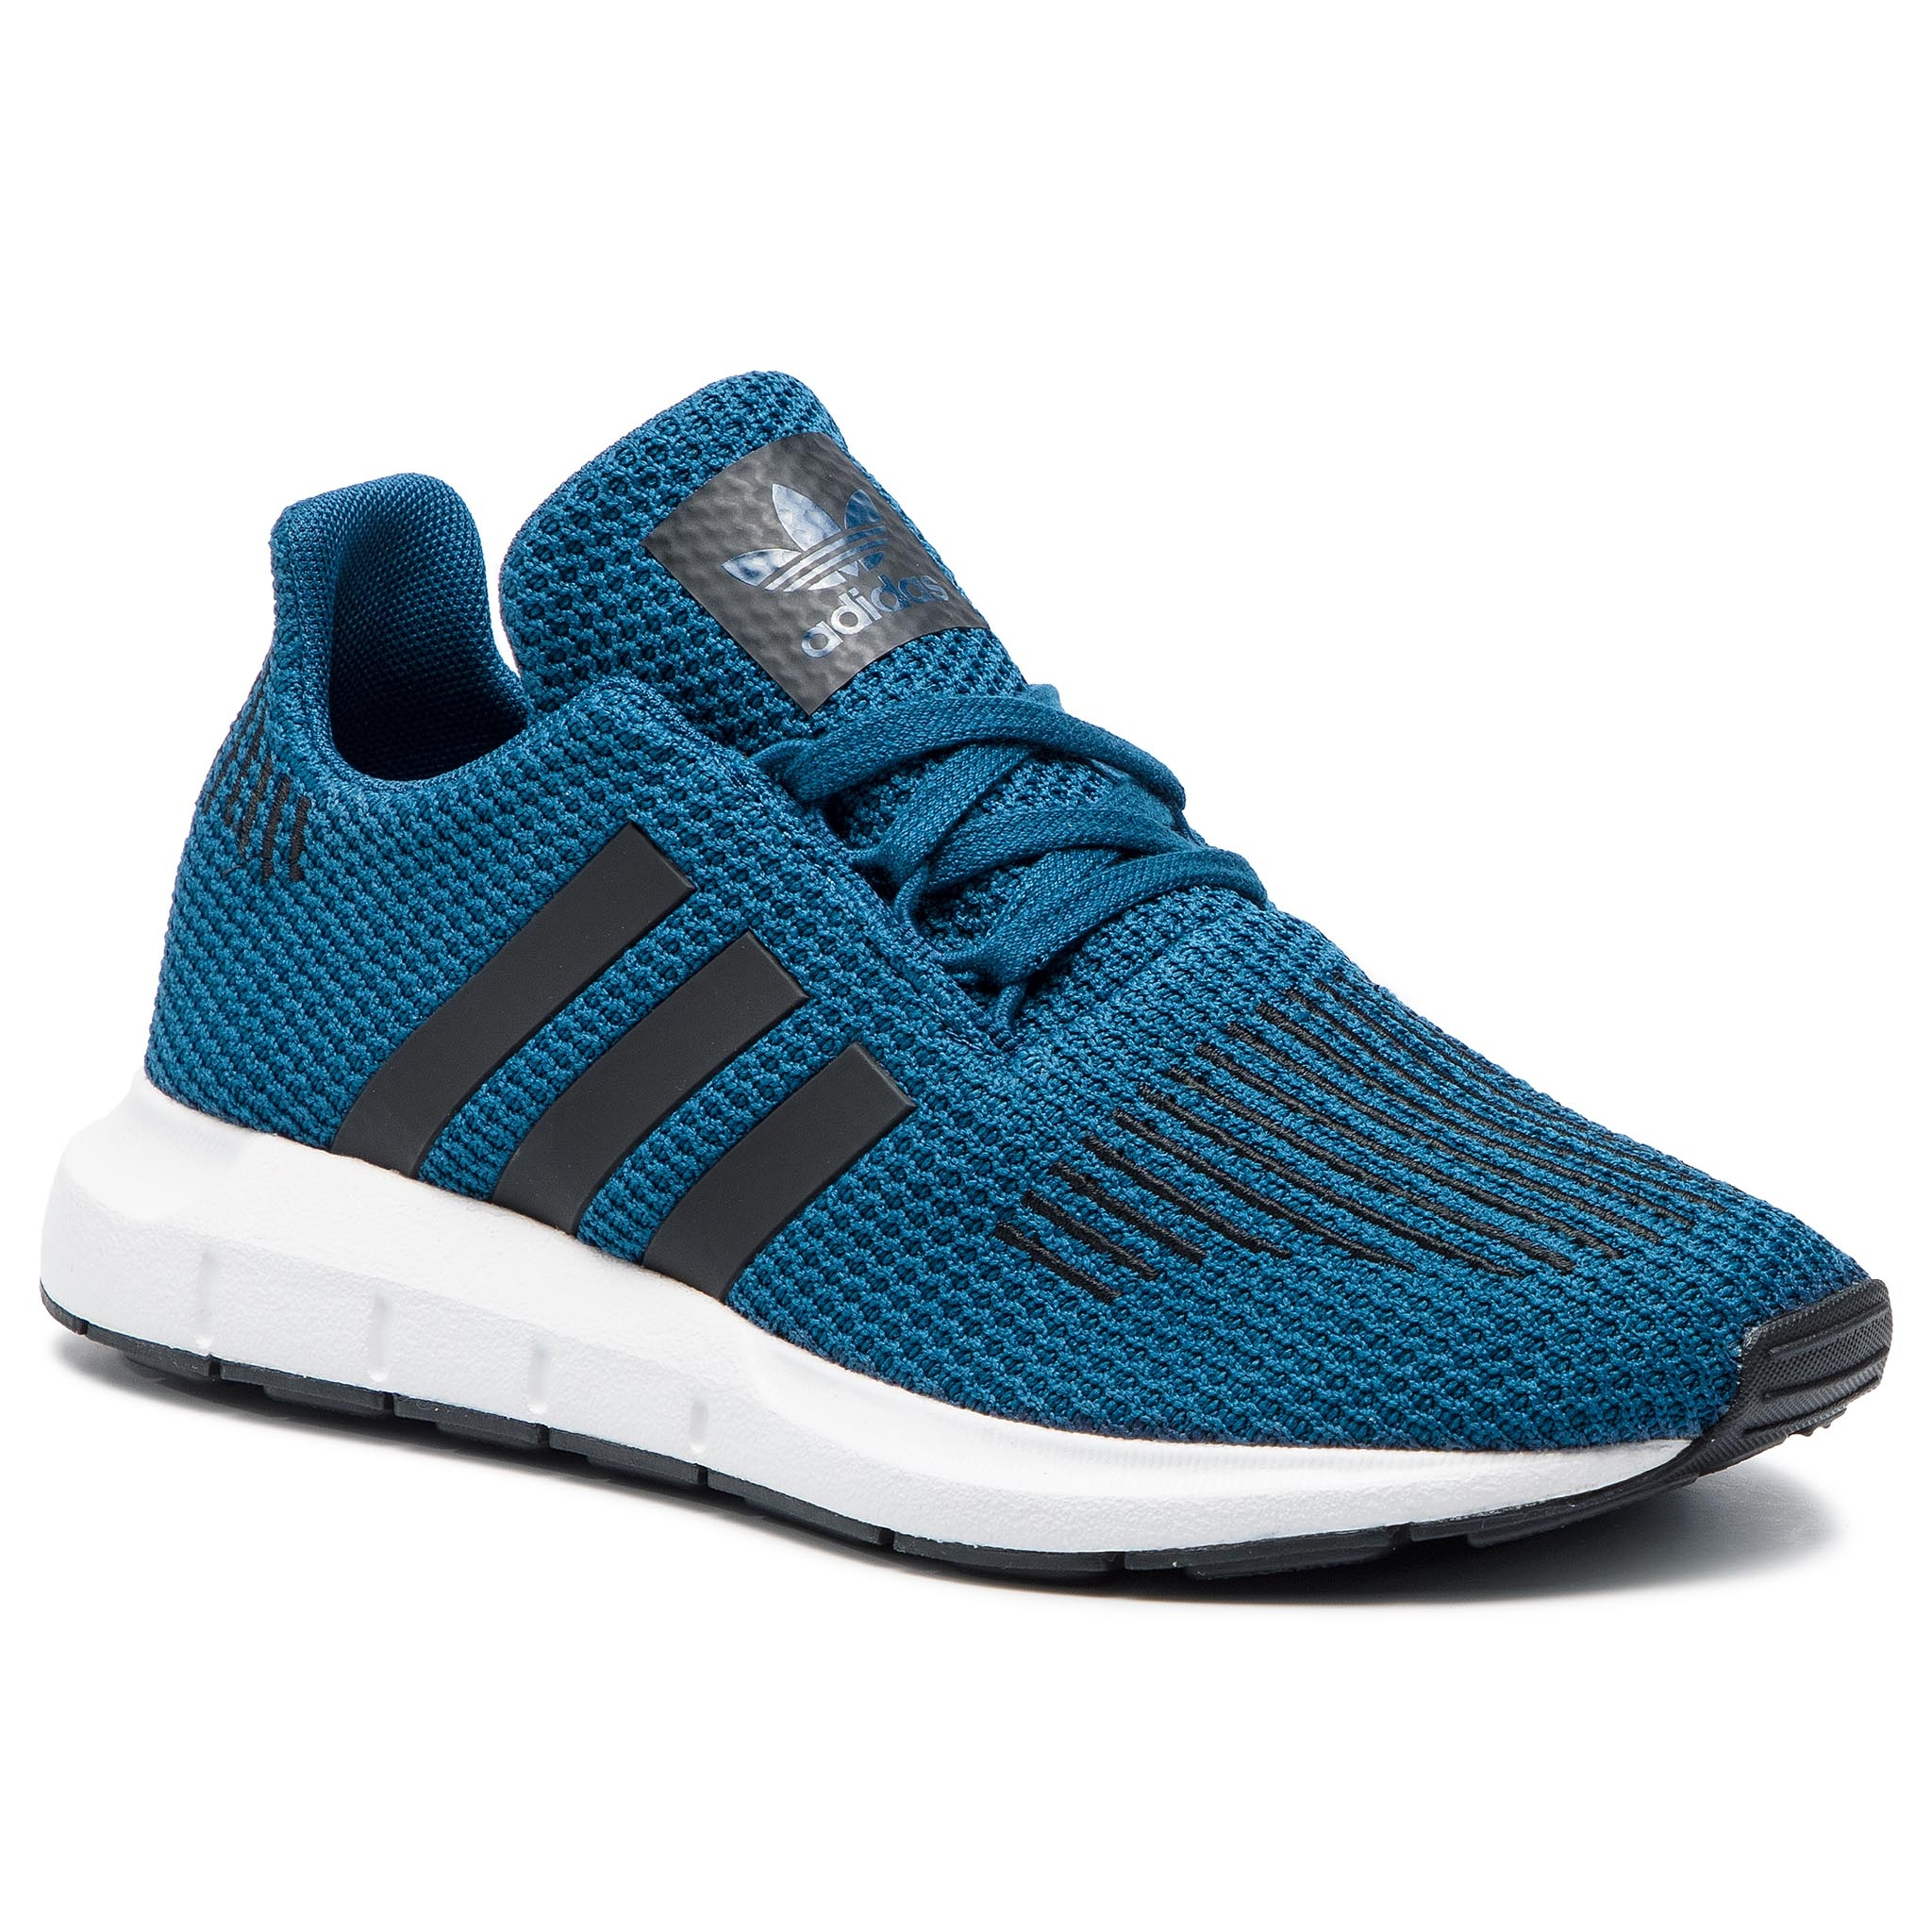 a61f83425011 Shoes adidas - Swift Run B37727 Conavy Conavy Ftwwht - Sneakers ...